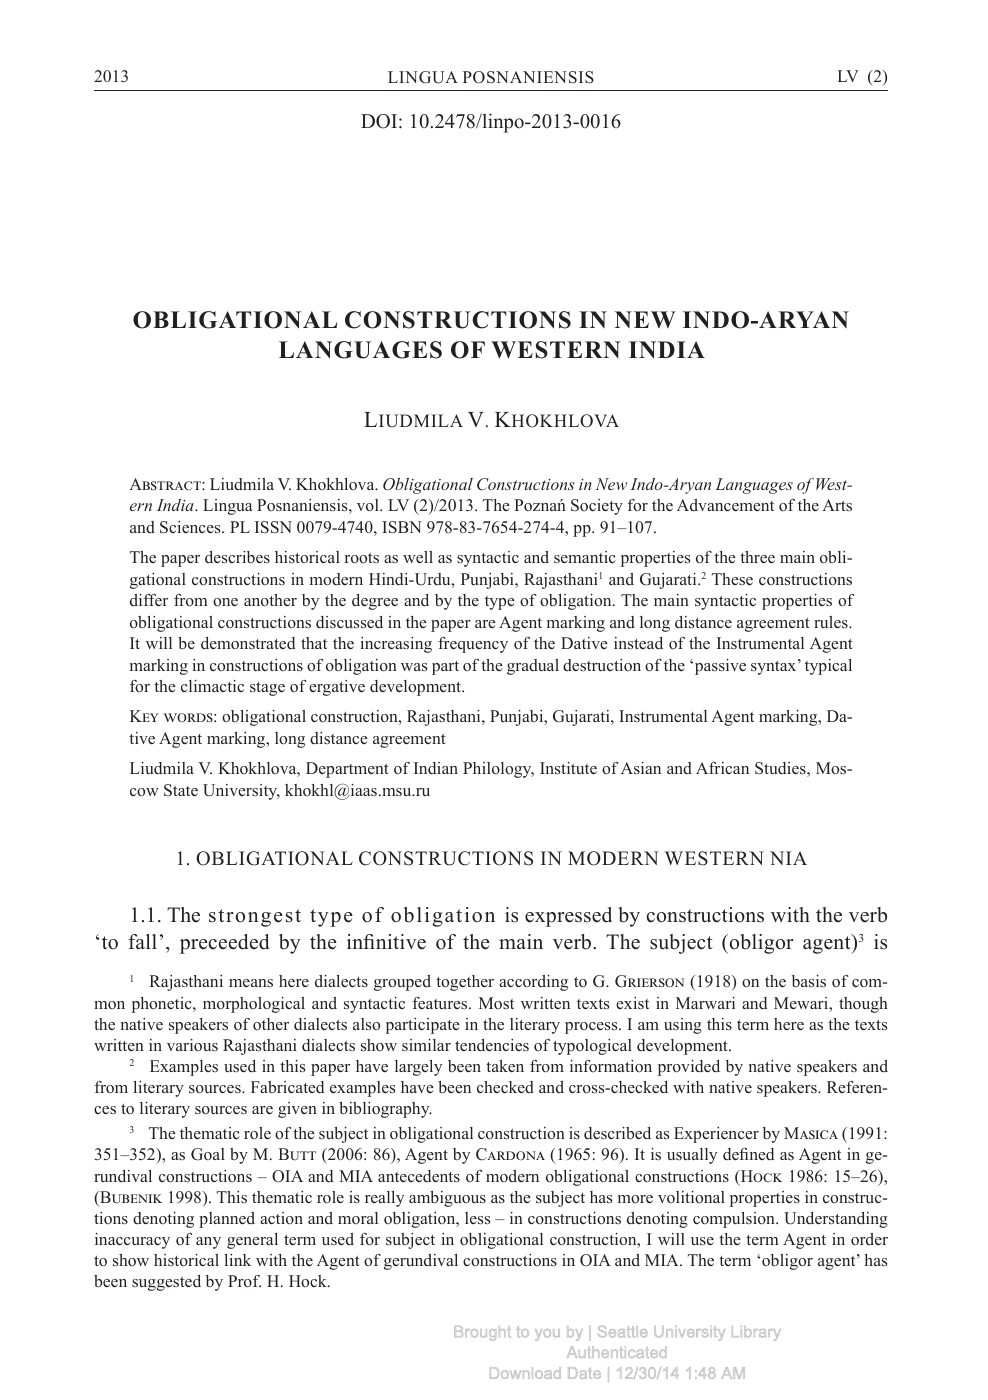 Obligational Constructions in New Indo-Aryan Languages of Western